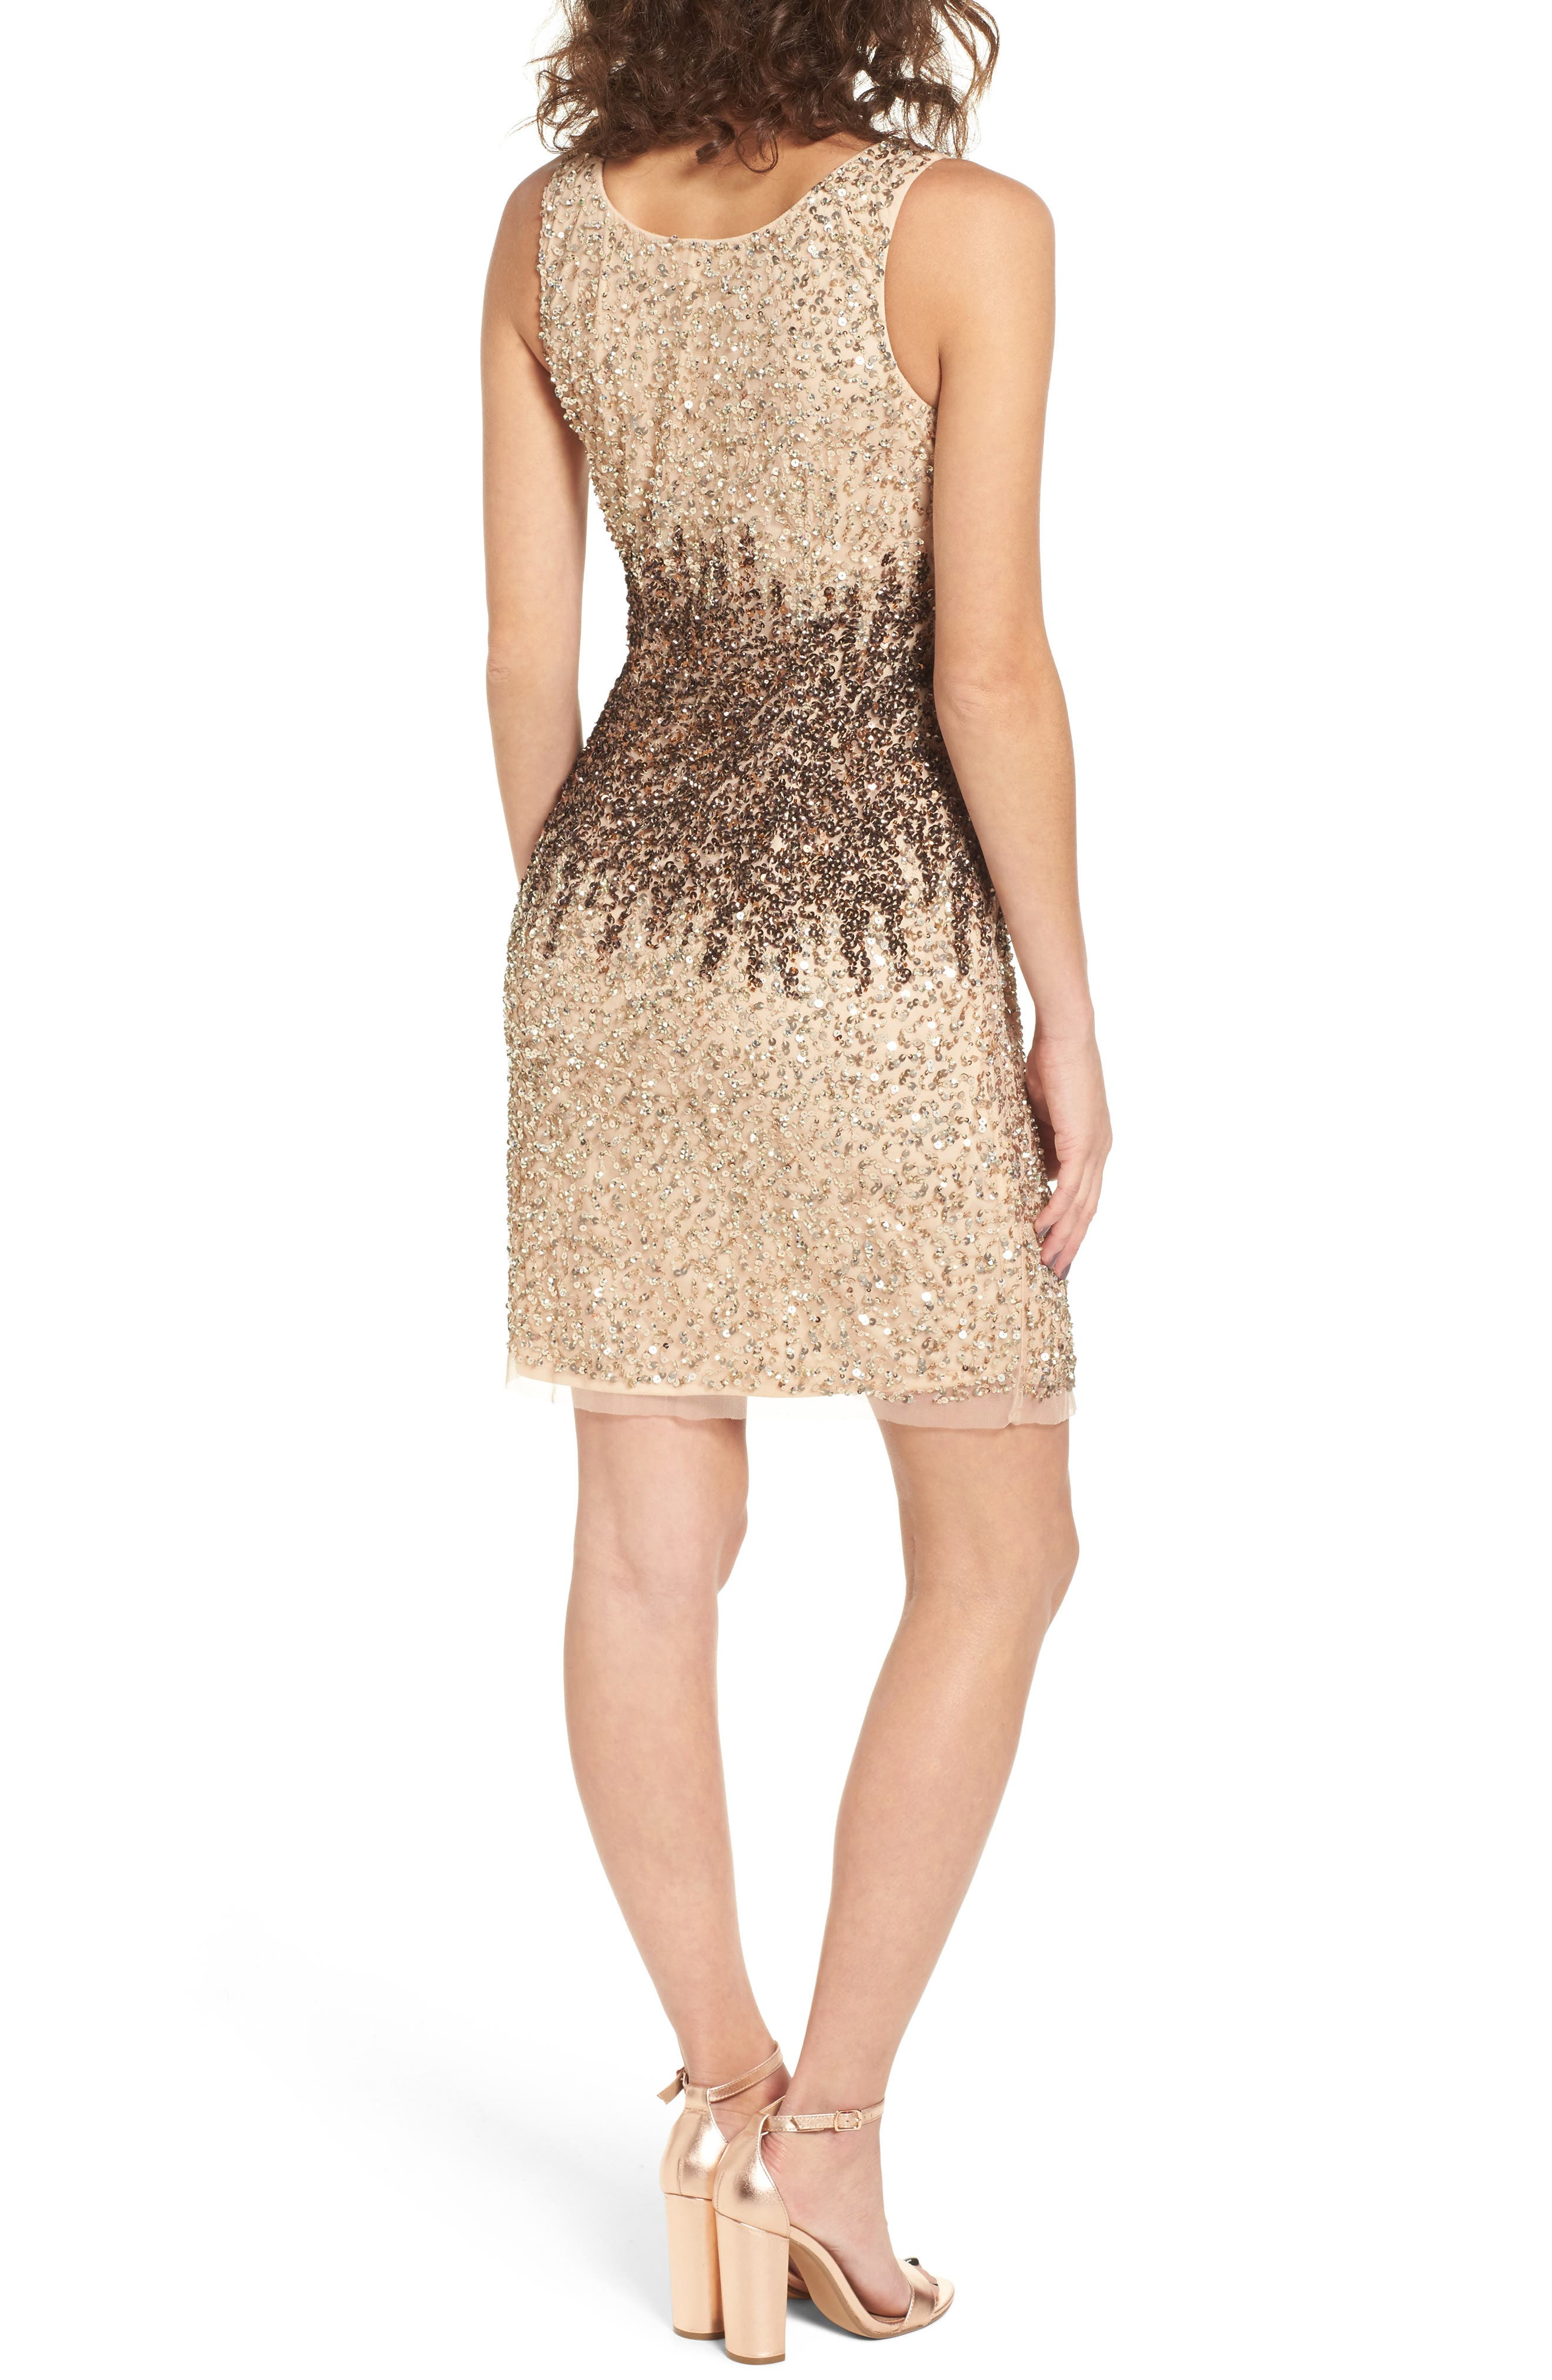 Sequins and Champagne Dress,                             Alternate thumbnail 2, color,                             Beige